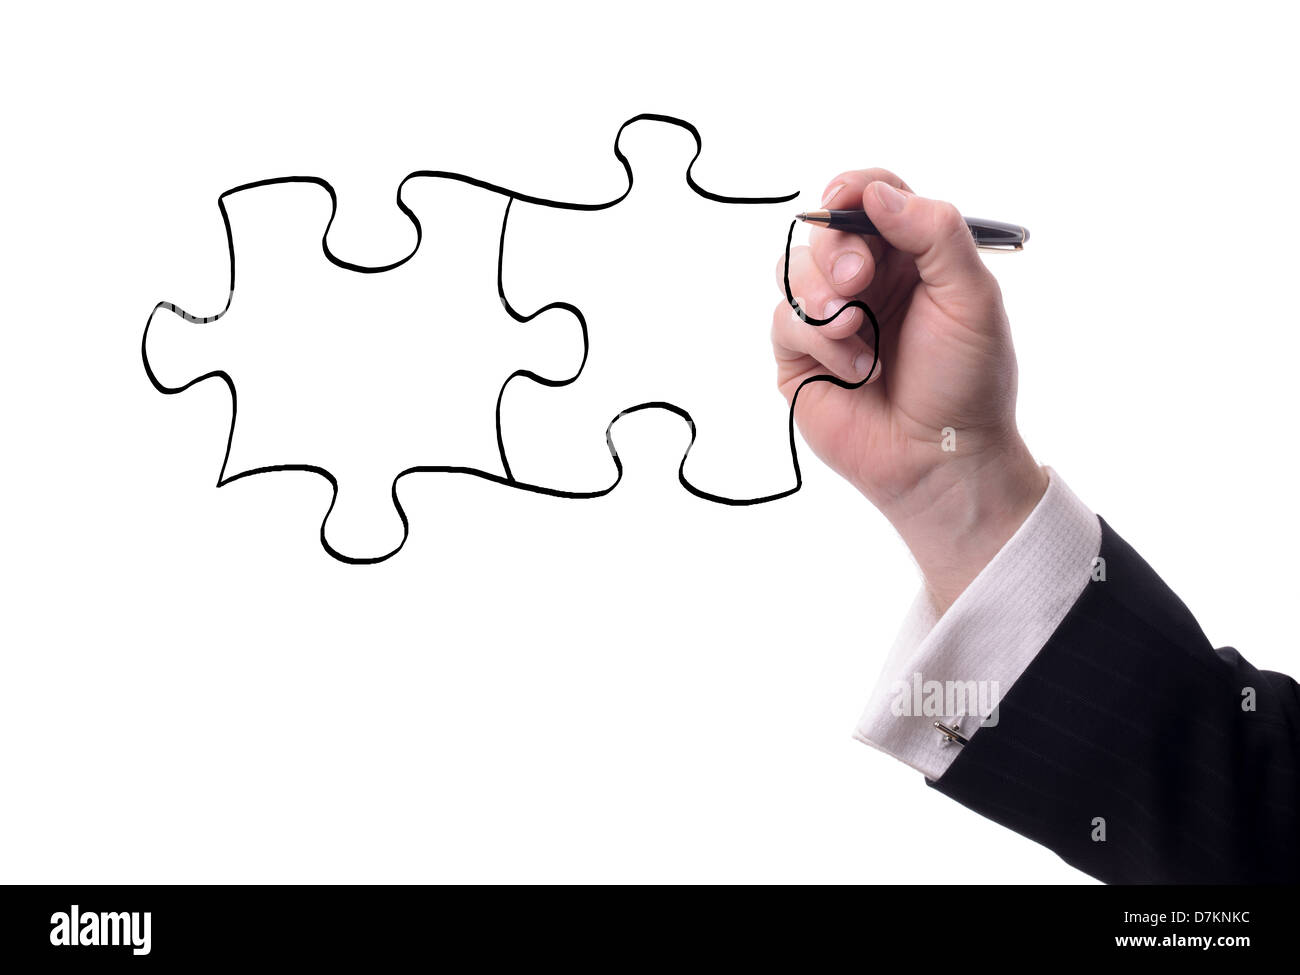 drawing pieces of a puzzle with copy space for text isolated on white - Stock Image